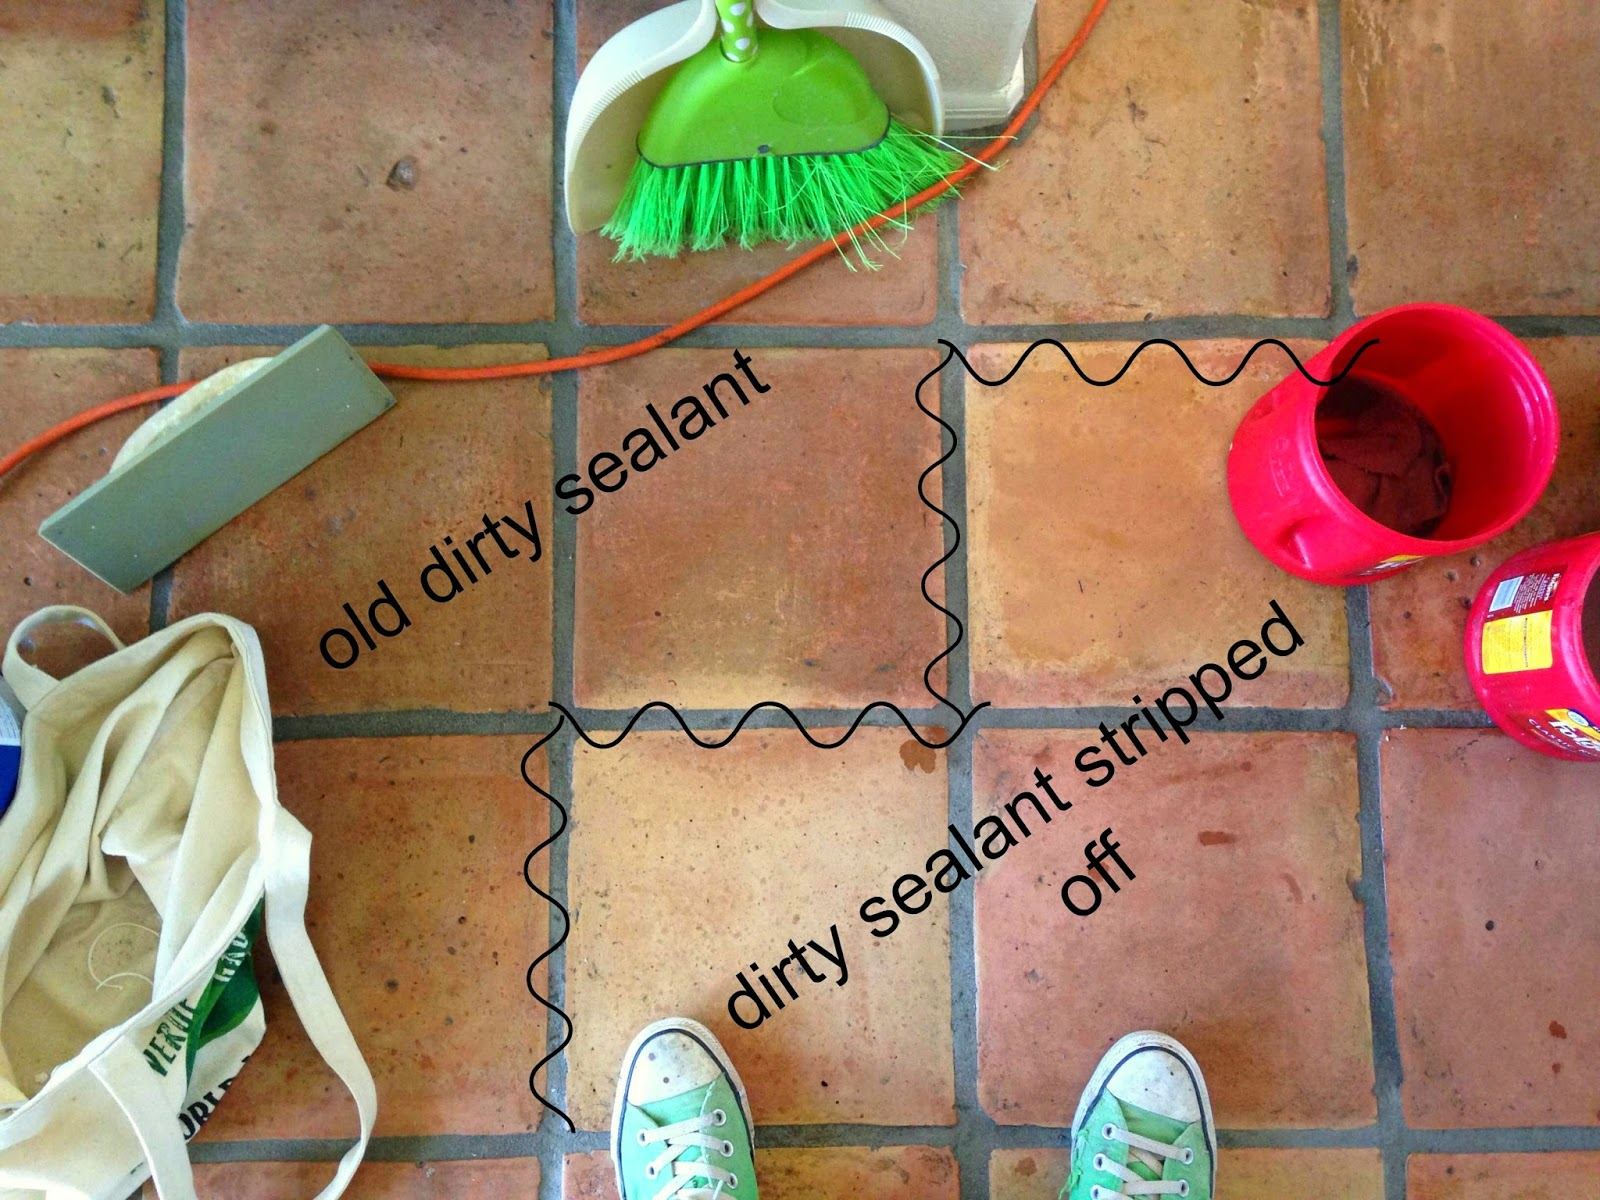 Hhow To Strip Saltillo Tile Floors, Strip Saltillo Tile, Strip Terracotta  Tile Floor,